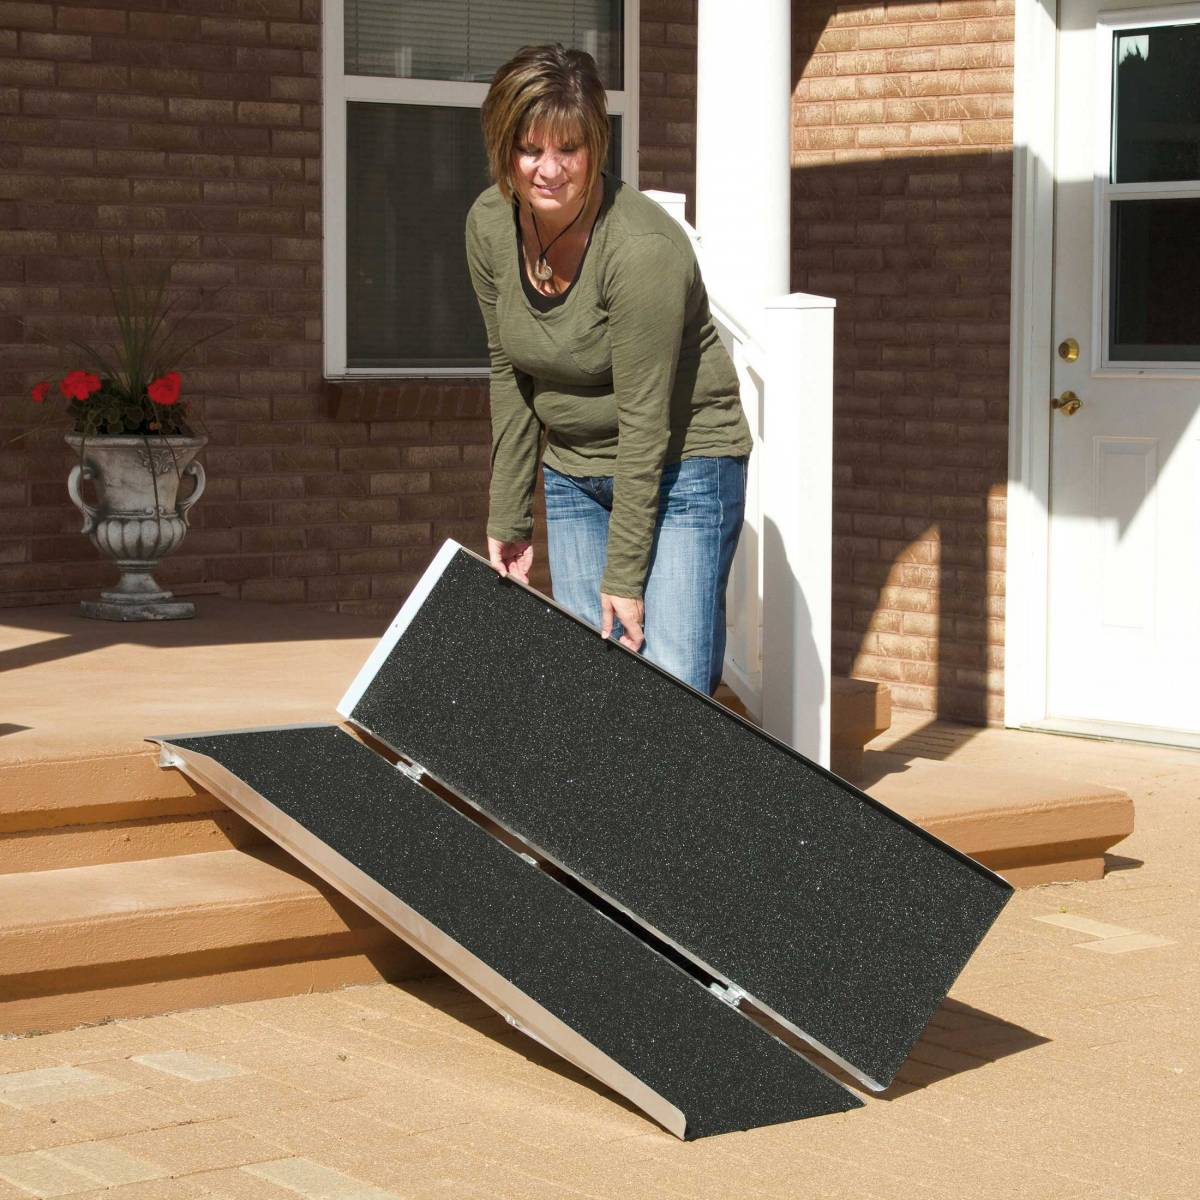 Buy portable ramps from McCann's Medical